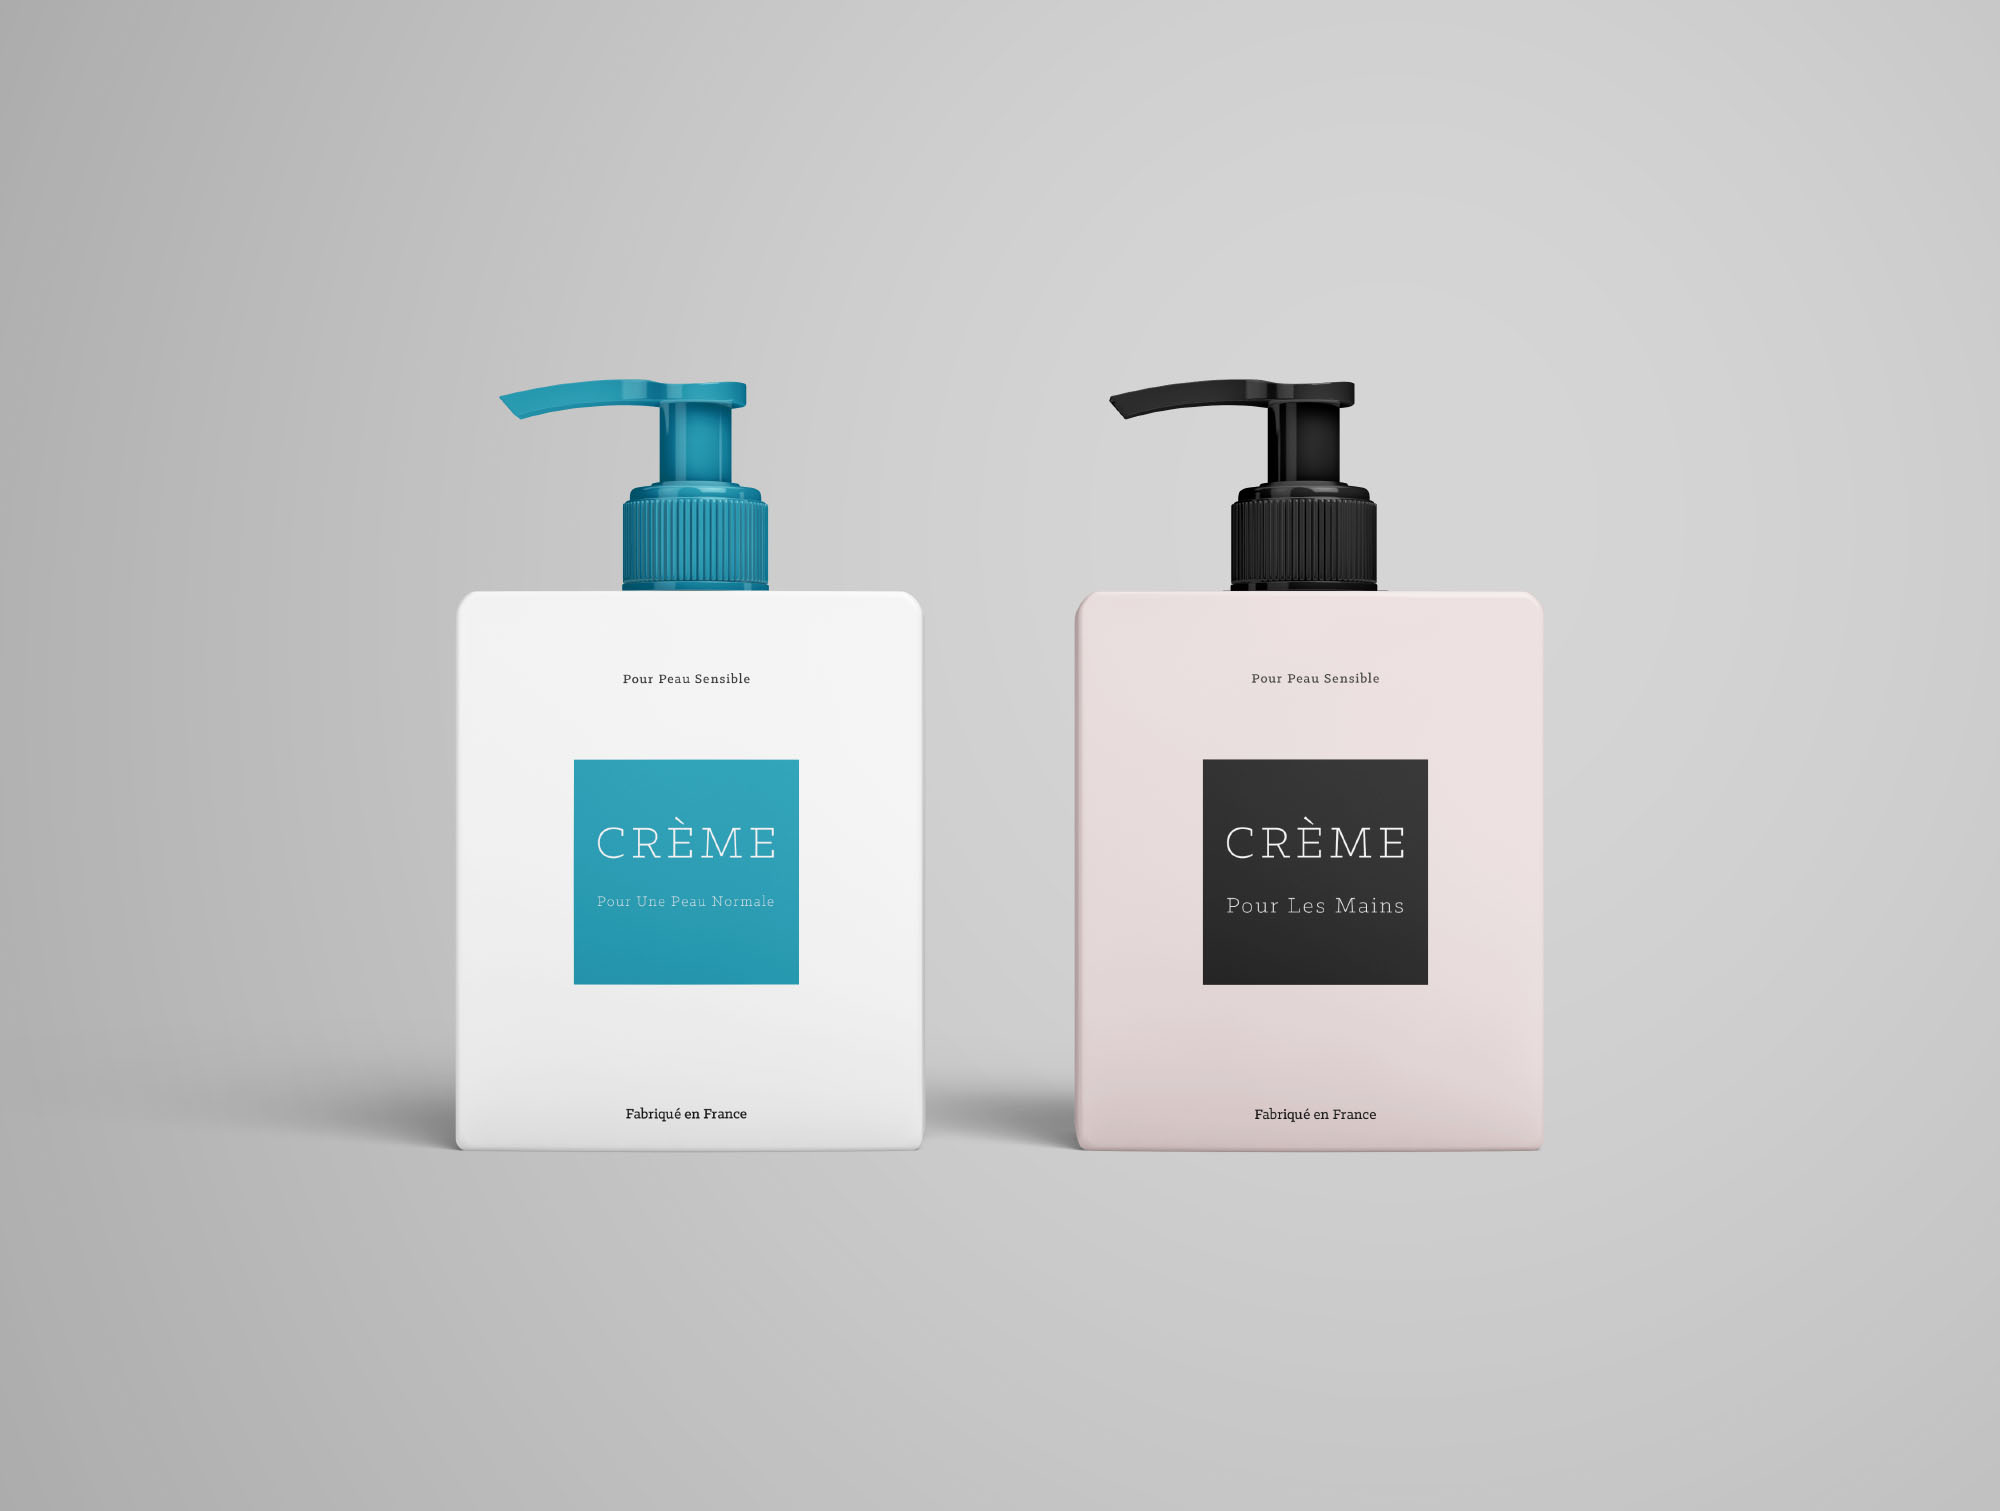 2 Cream Bottle Mockups